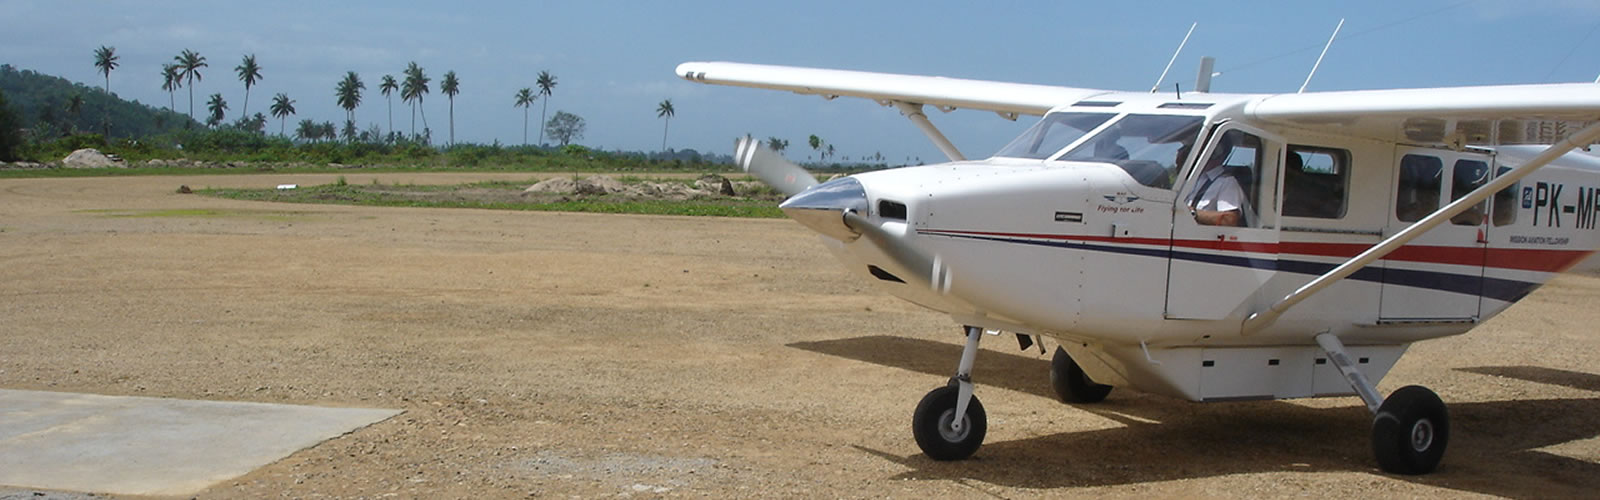 MAF aircraft on remote airstrip